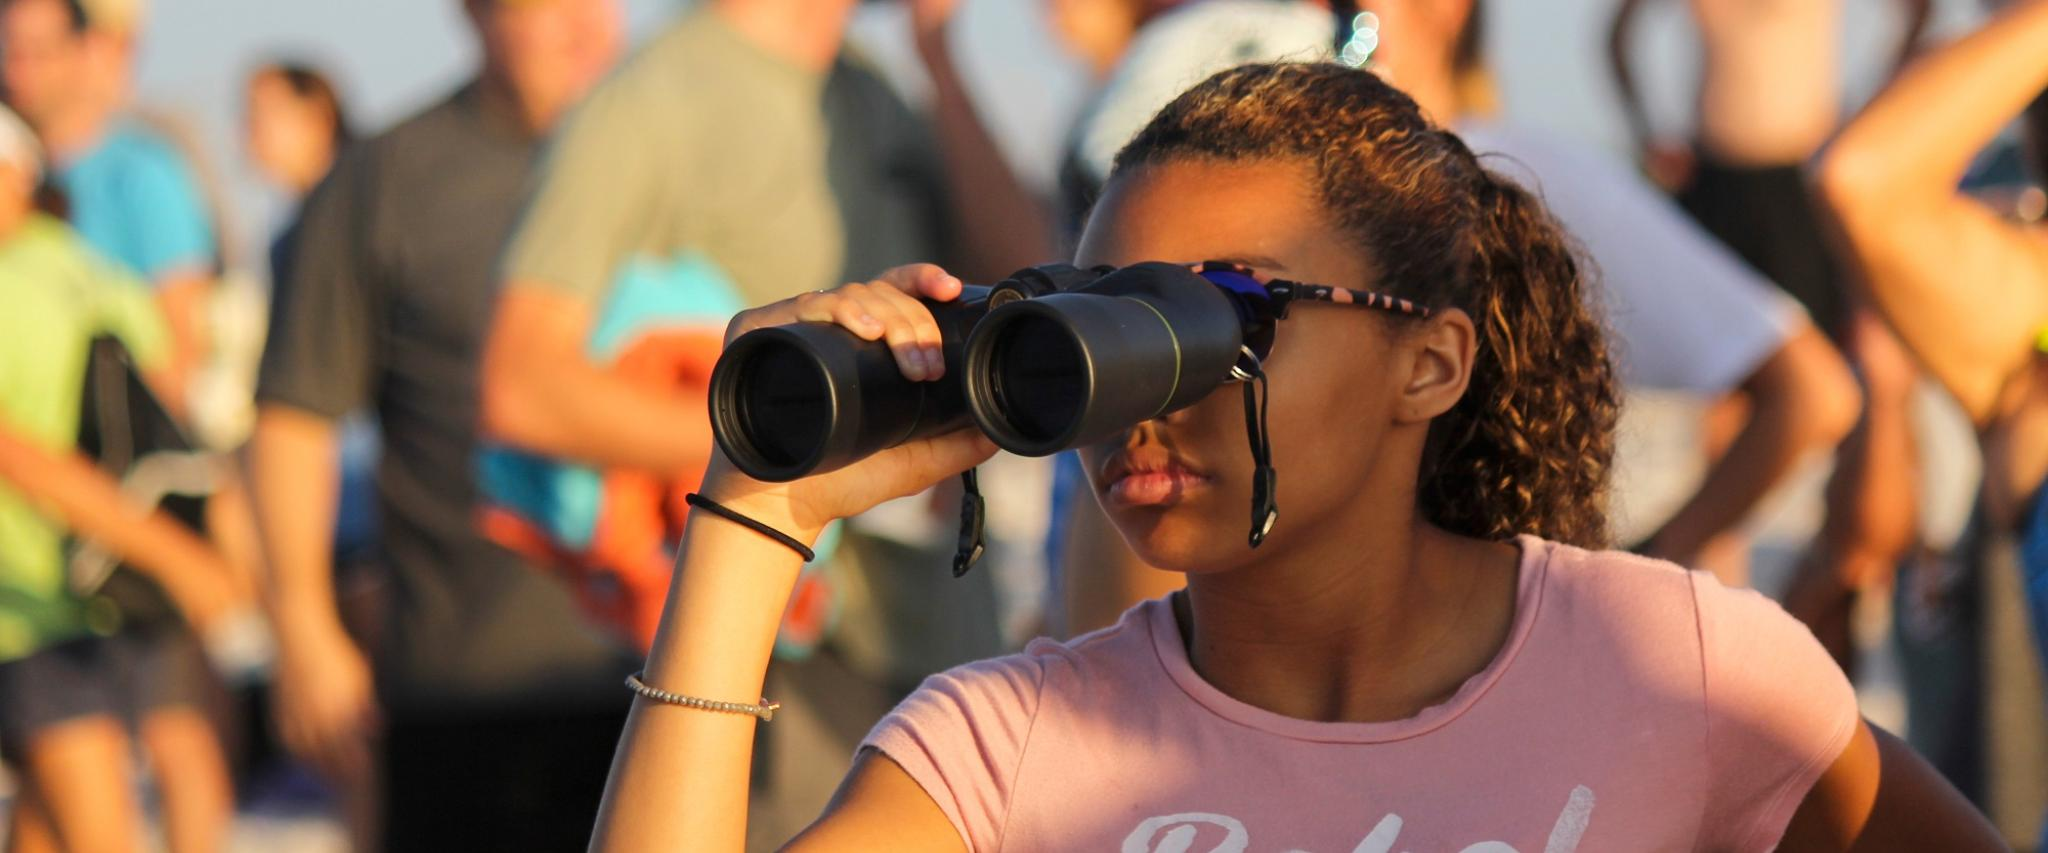 girl with binoculars at foley sport event